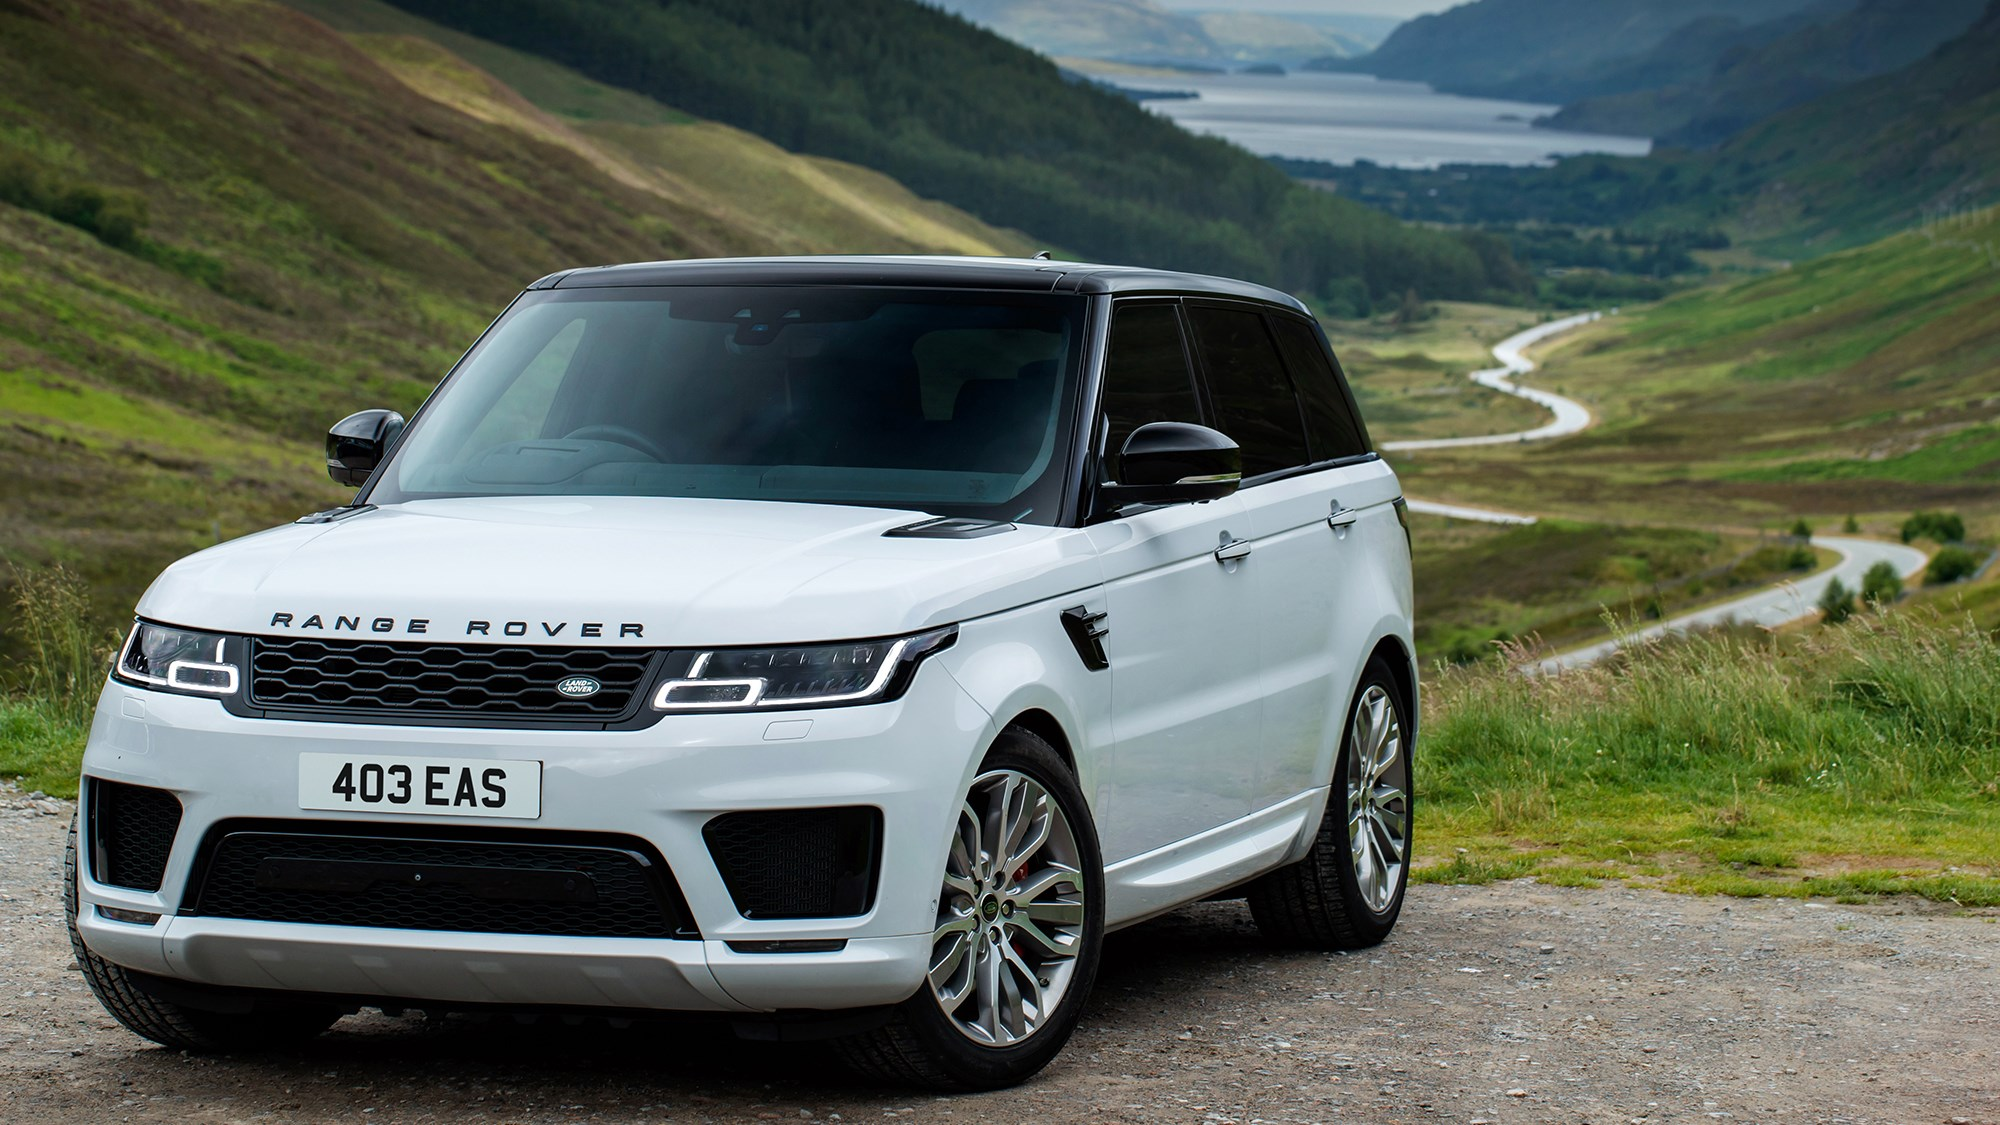 All-new 6cyl engine diesel added to Range Rover Sport lineup